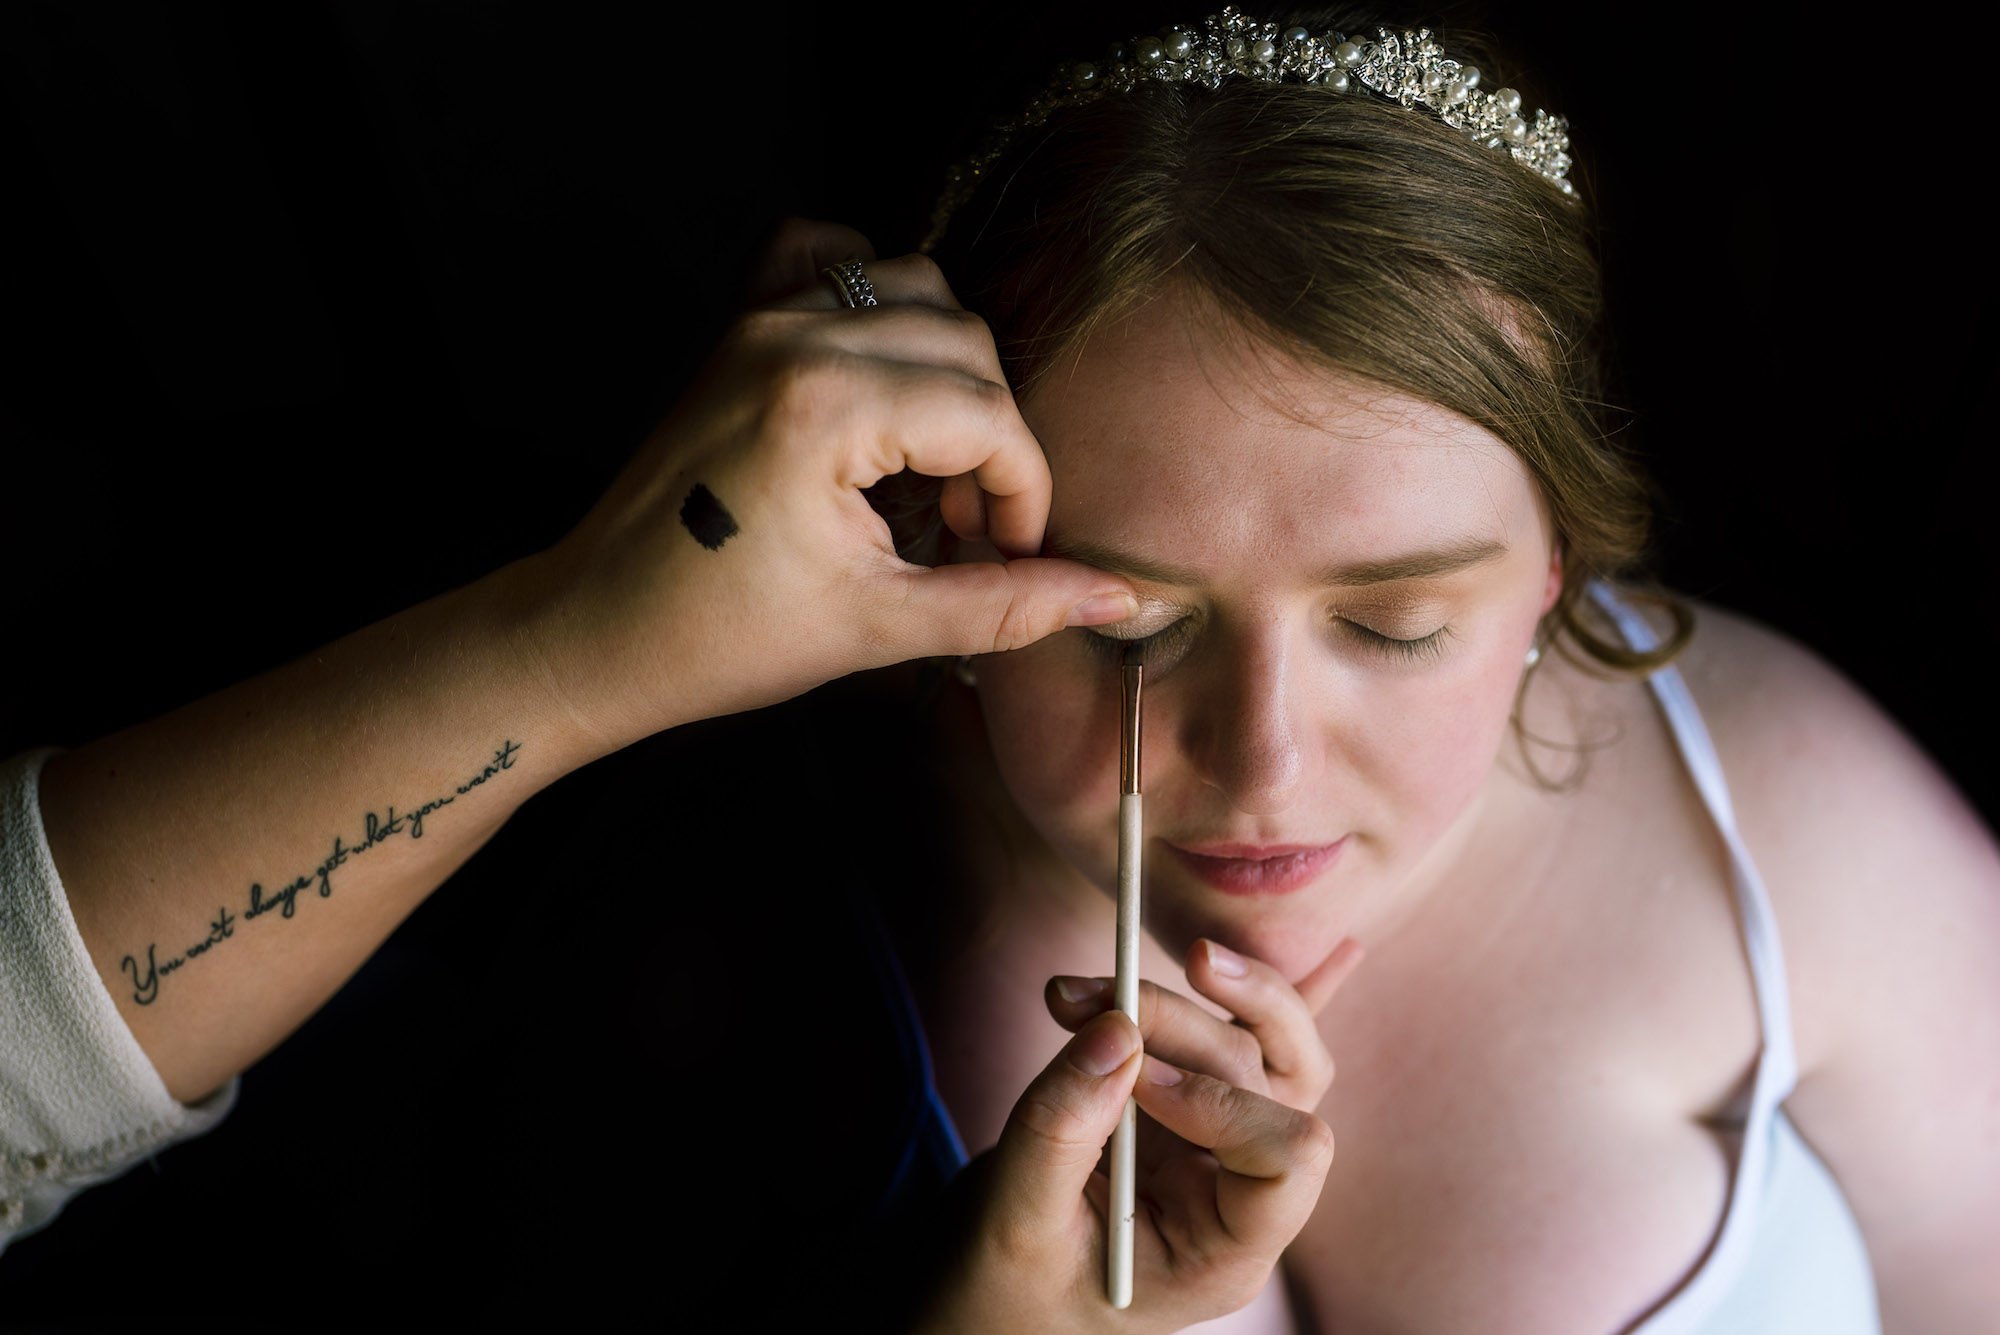 Downwards shot towards the bride having her eyeshadow applied